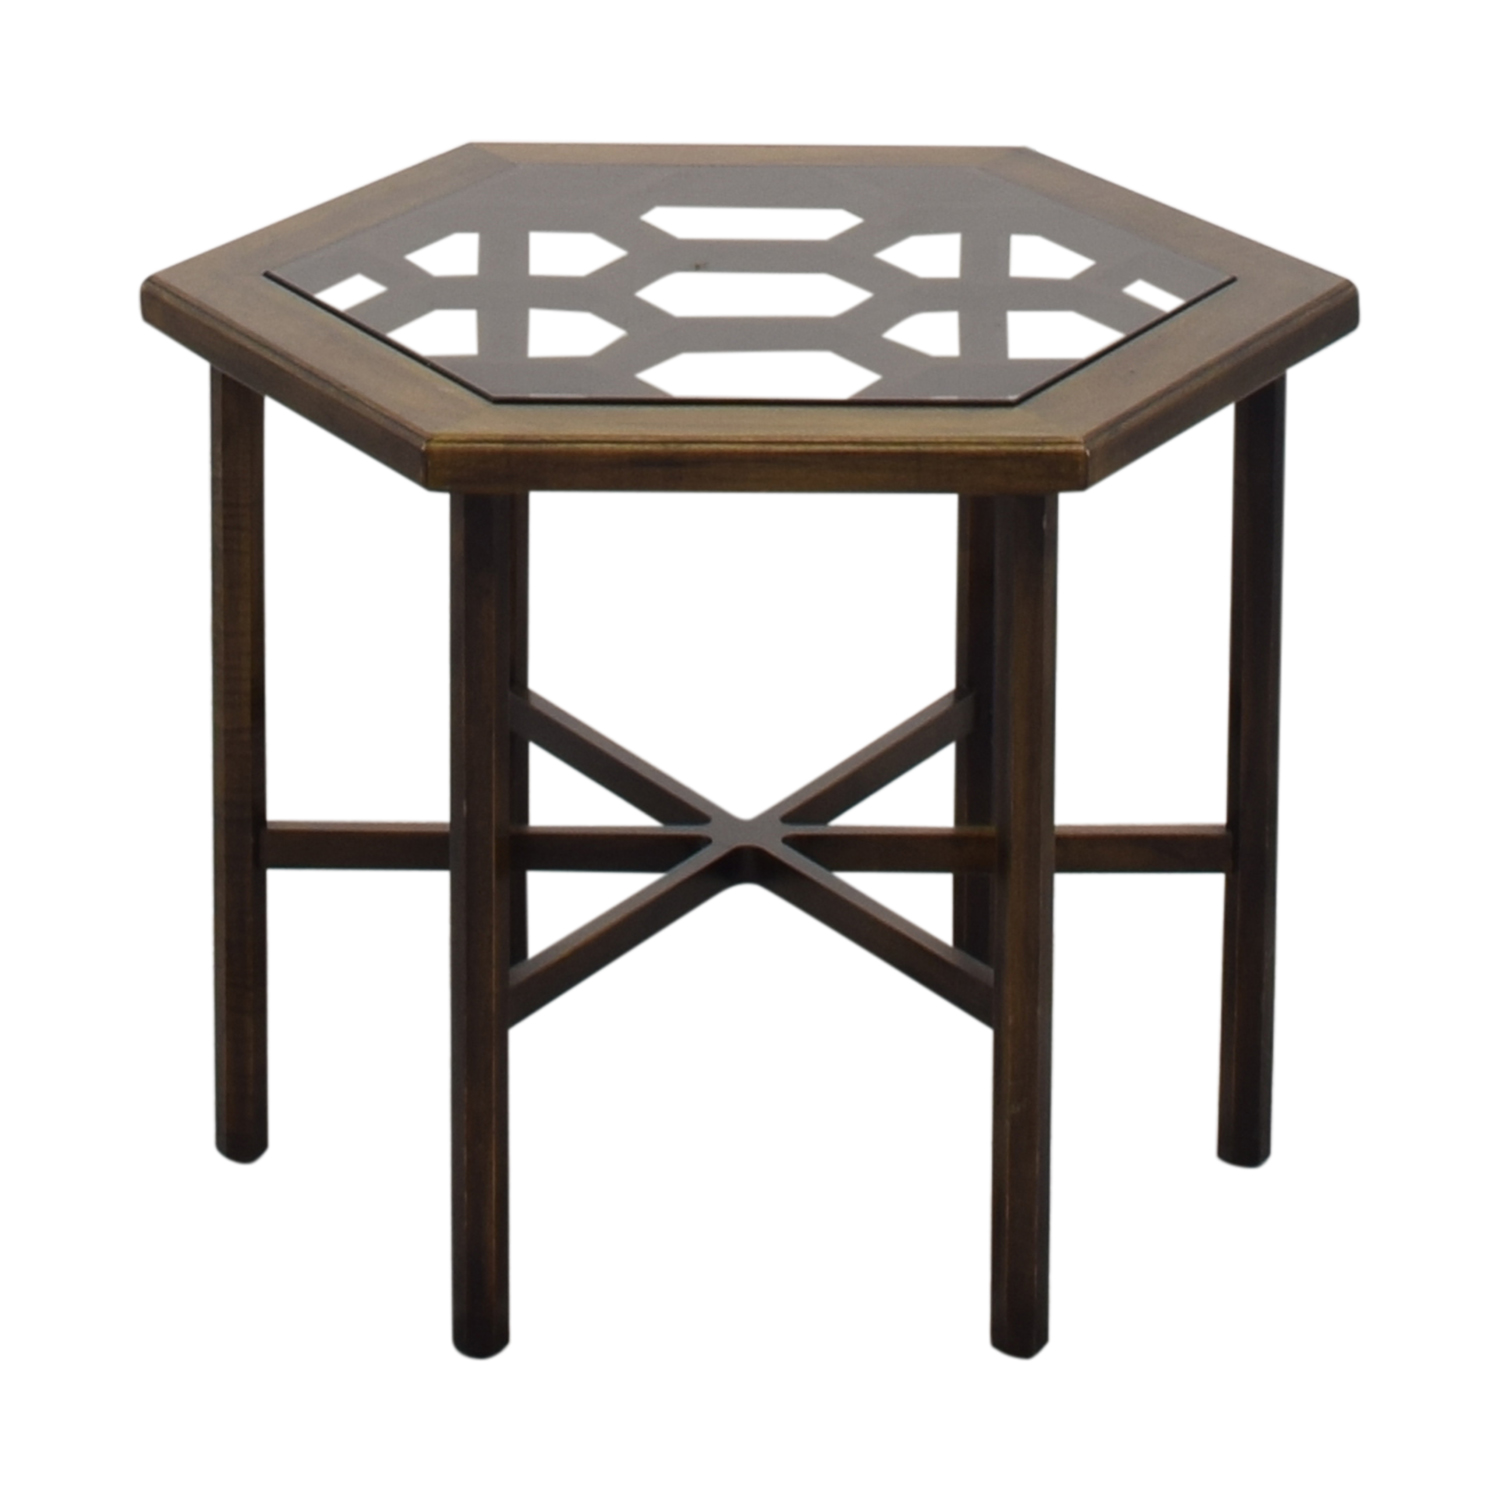 John Widdicomb Co. John Widdicomb Hexagonal Side Table ct